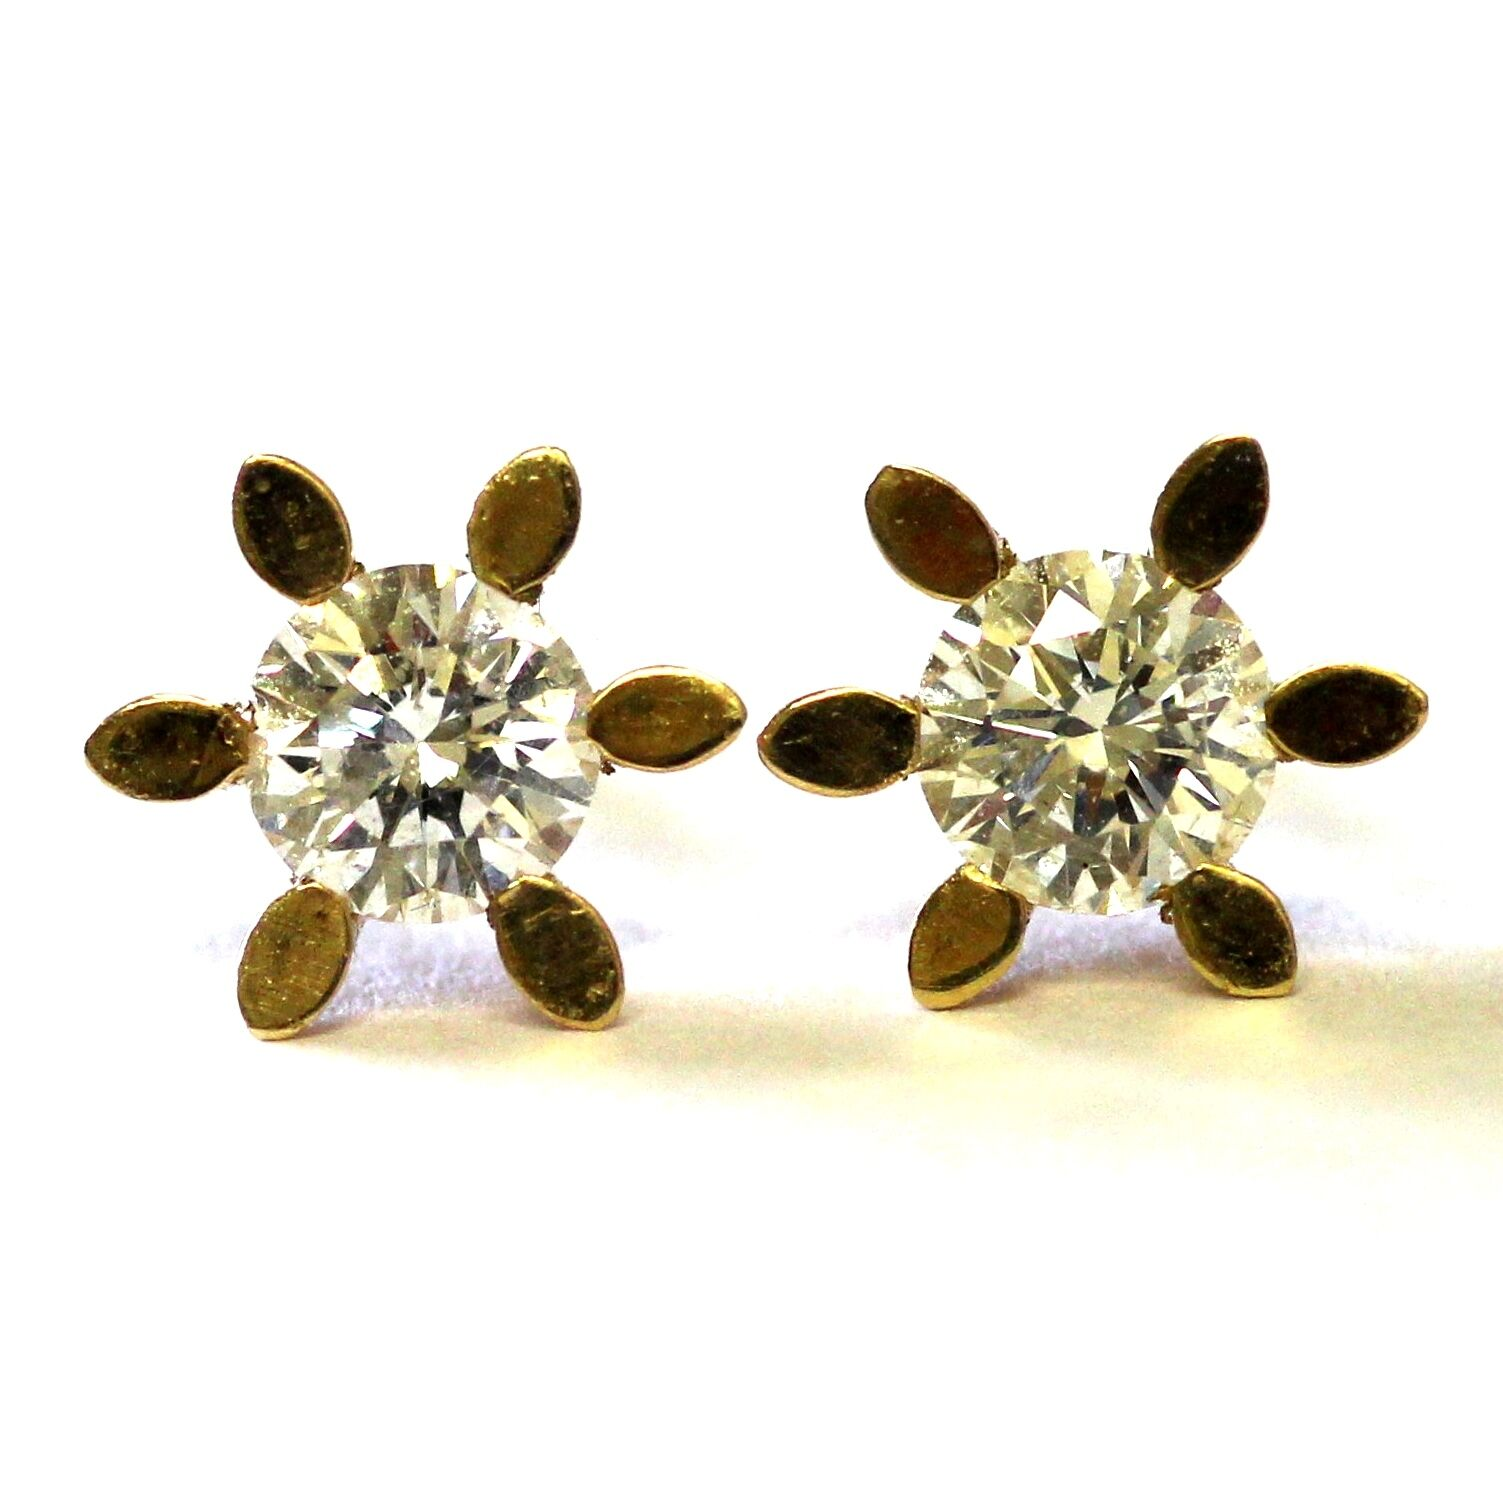 New 14k yellow gold .83ct SI2 G round clarity enhanced diamond stud earrings